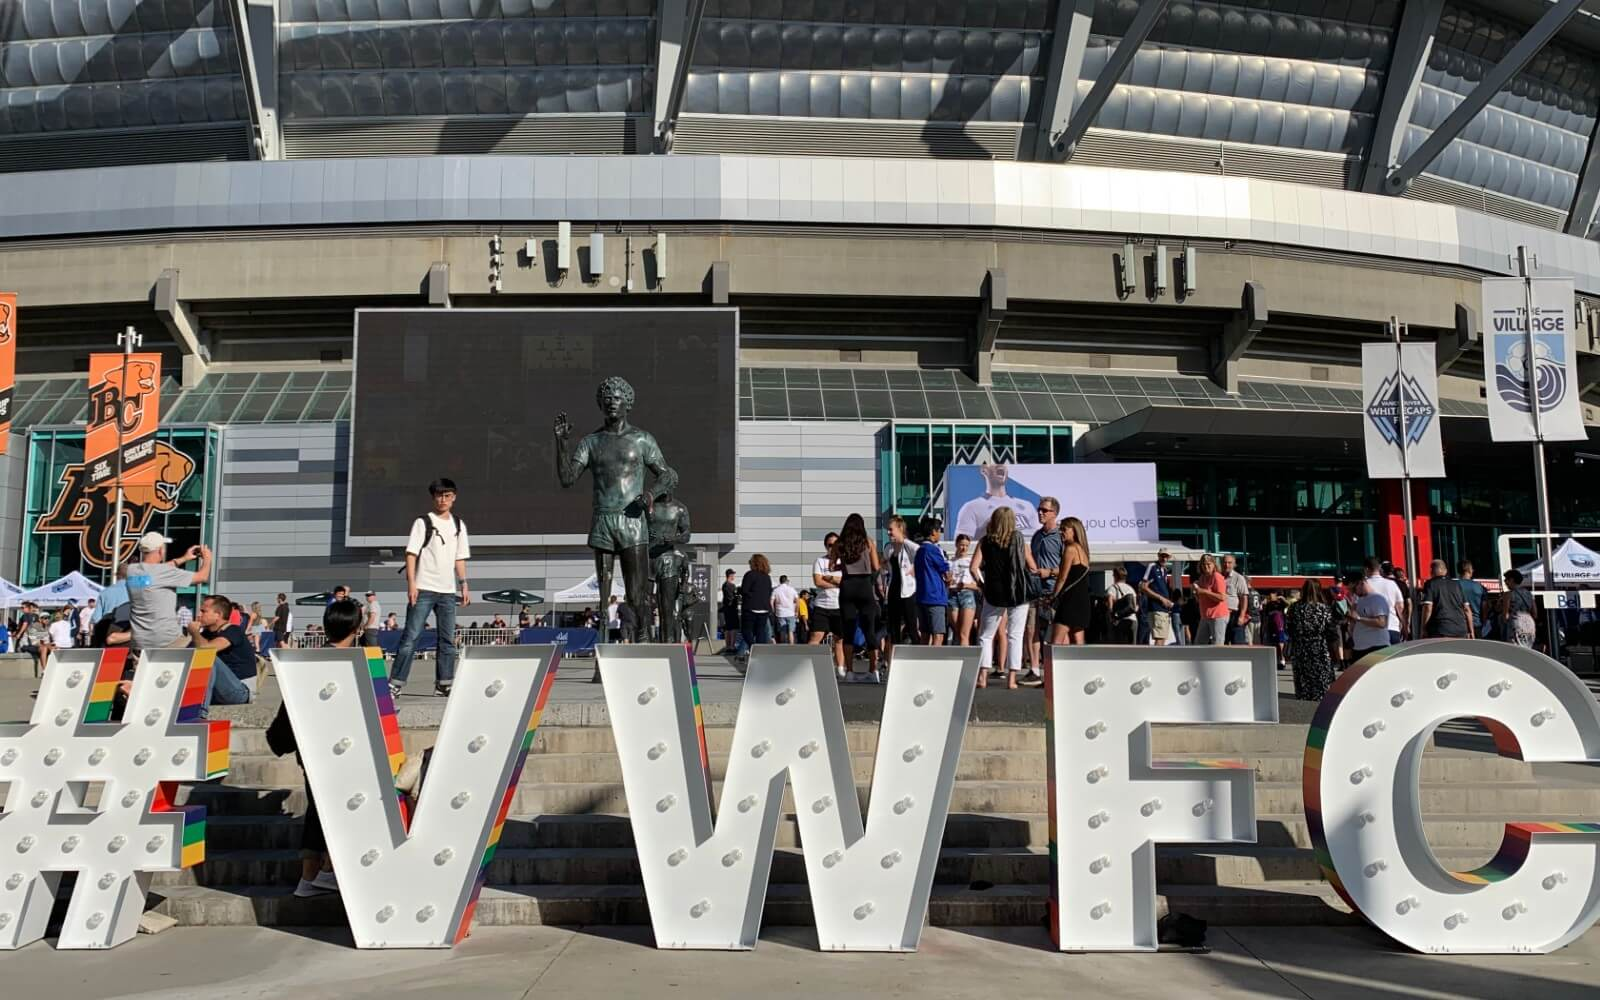 fans gathering outside bc place for a whitecaps game hastag vwfc